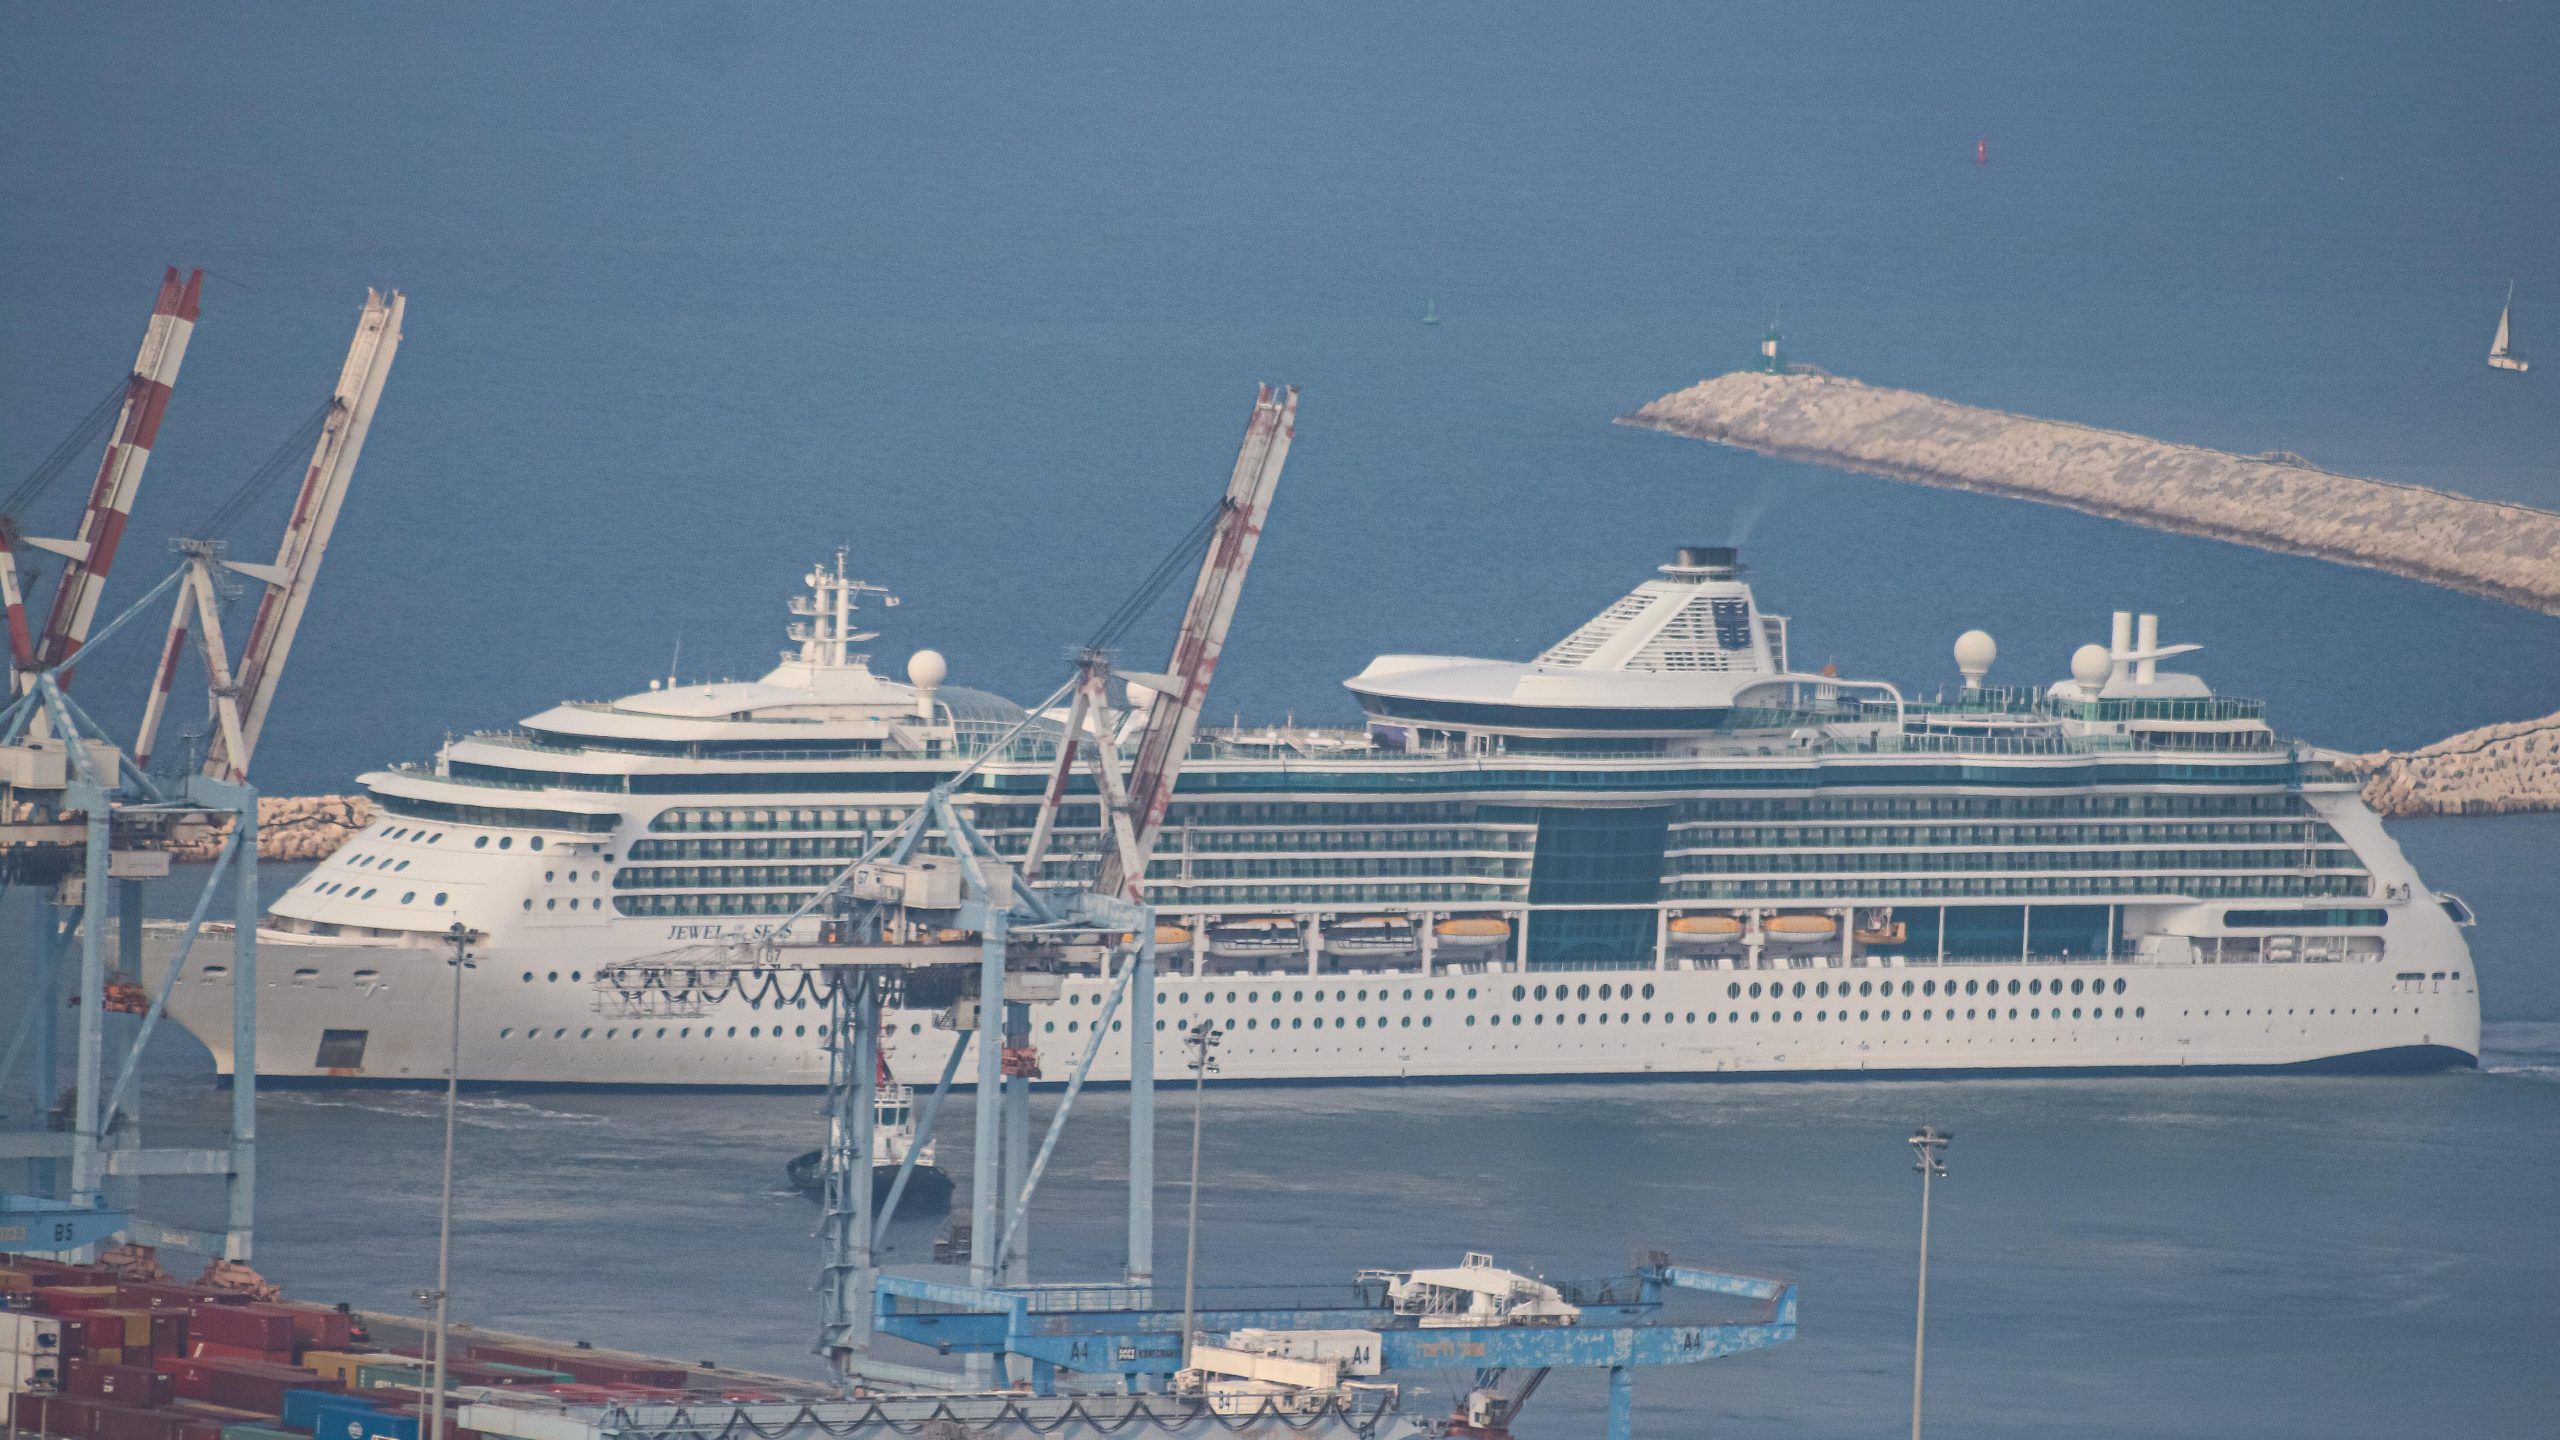 Cruise Ship Jewel of the Seas Enters Haifa Port